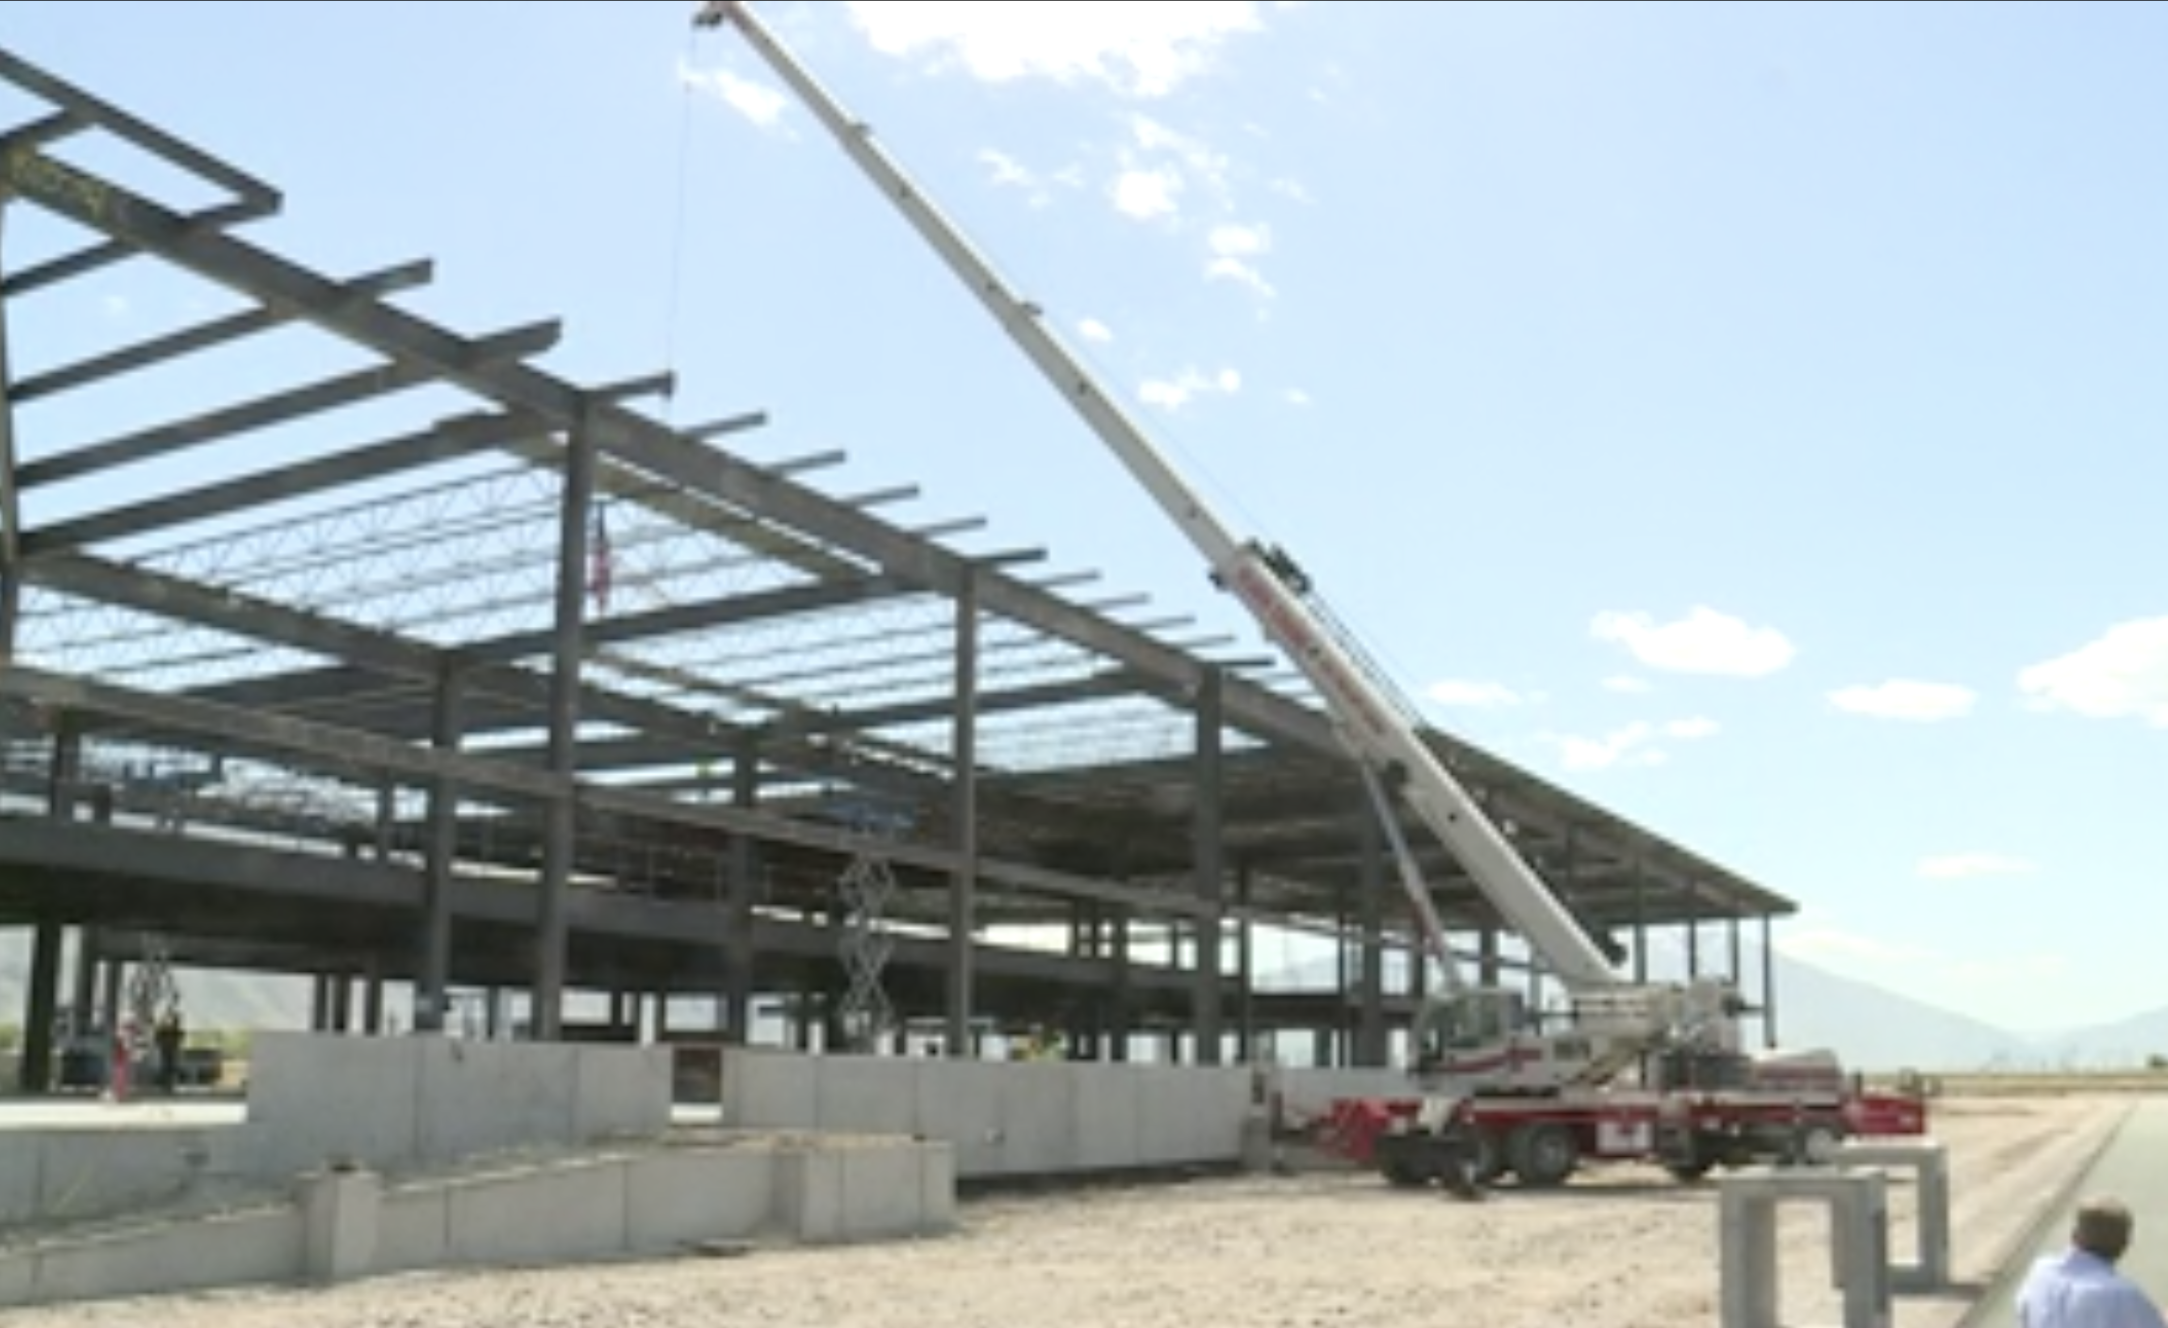 A crane hoists the highest beam of the new Provo Municipal Airport terminal into place on Thursday, May 20, 2021.